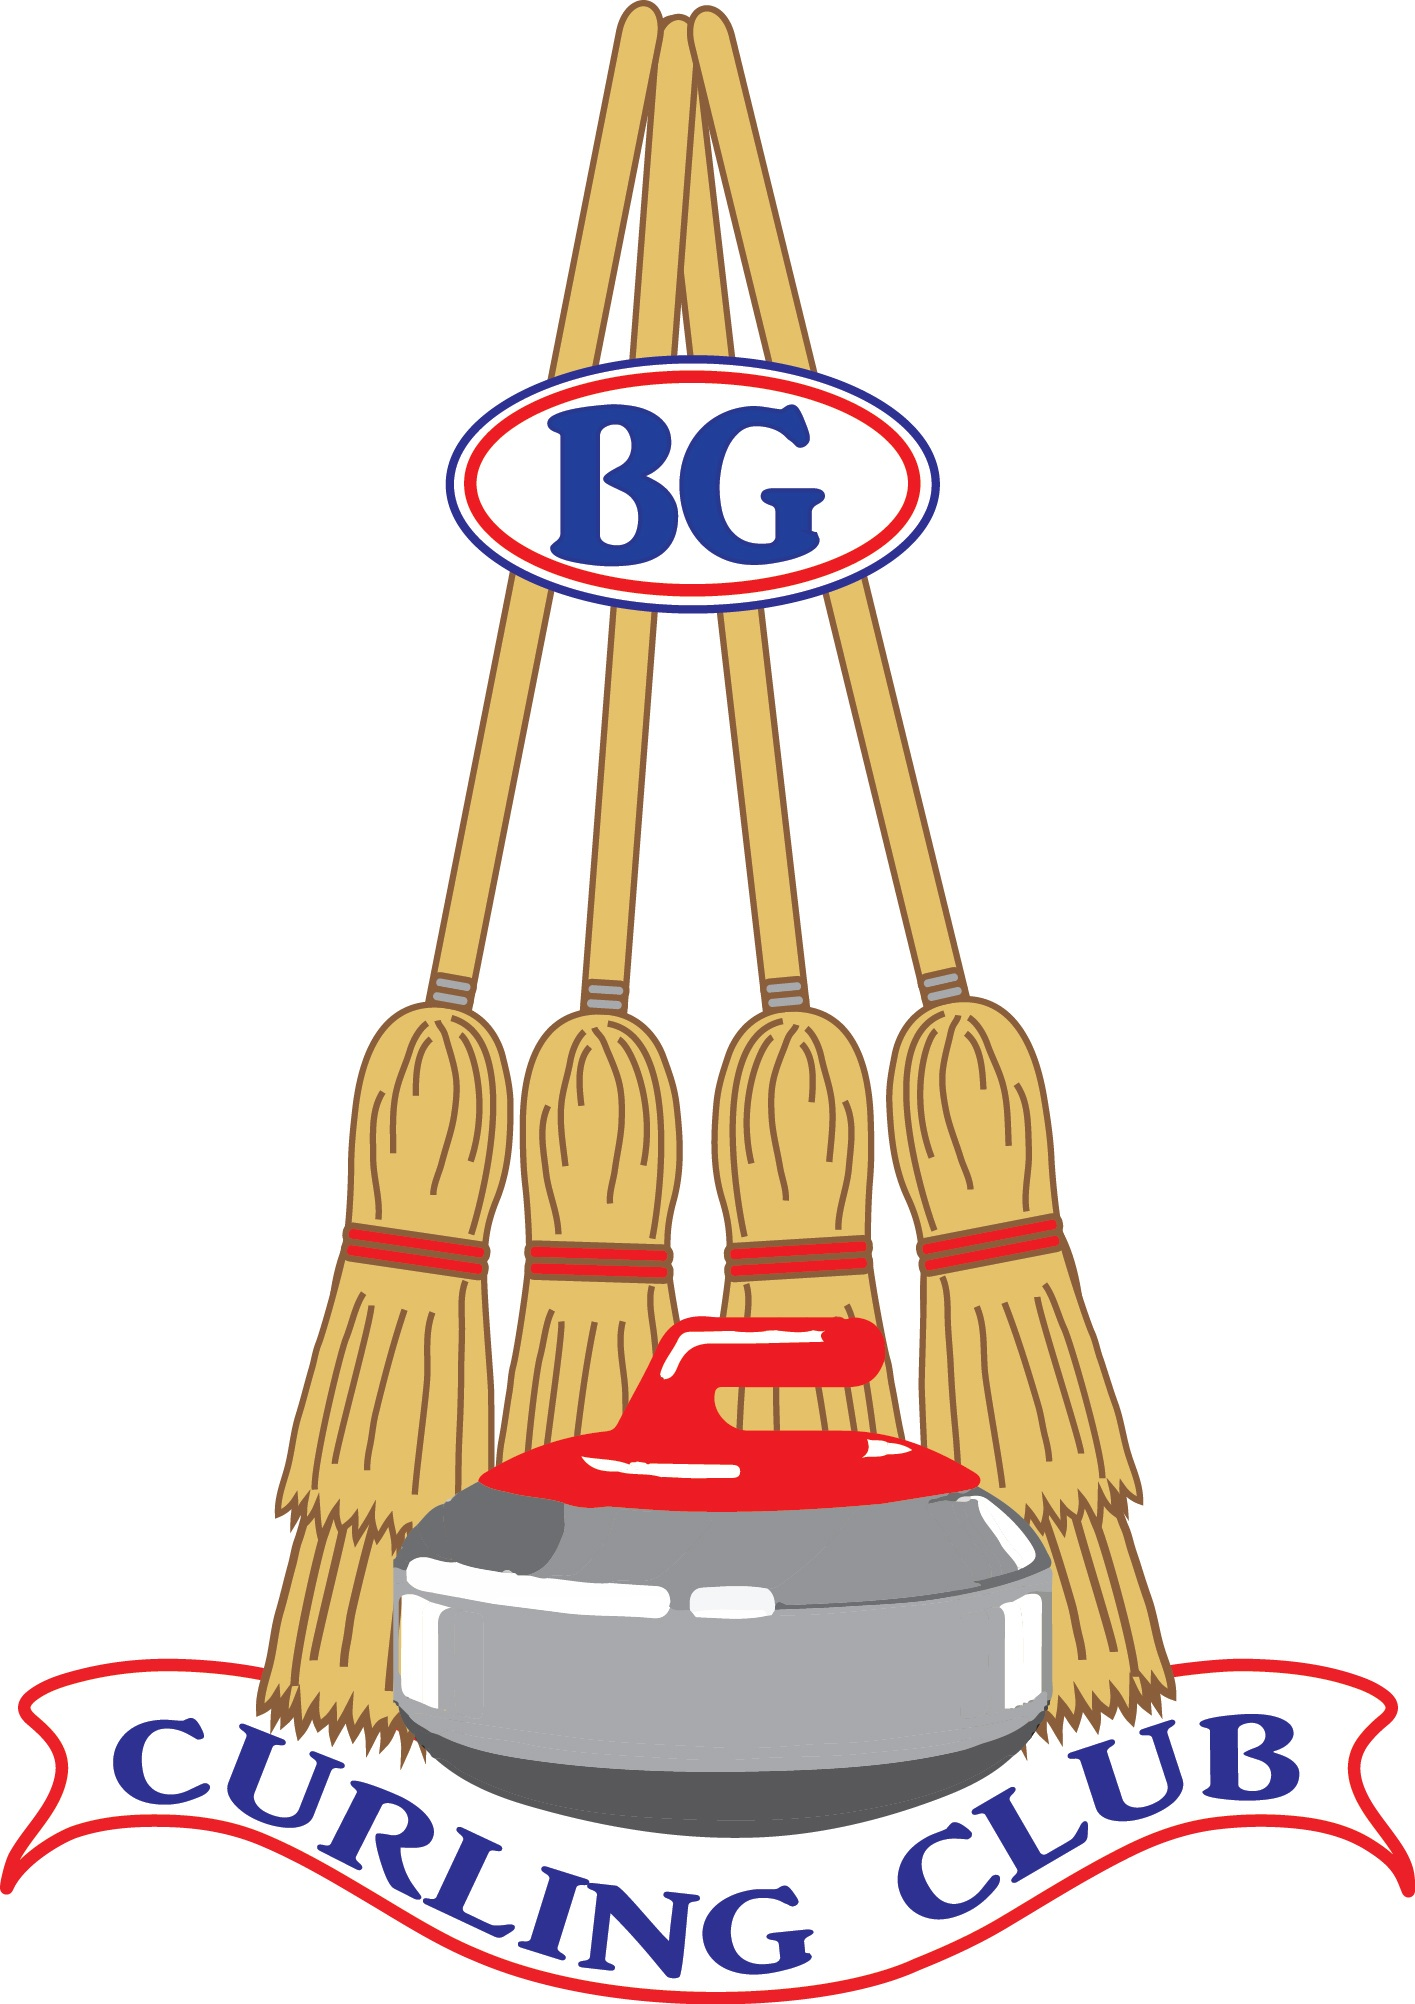 BG Curling Club Now Open in Their New Location